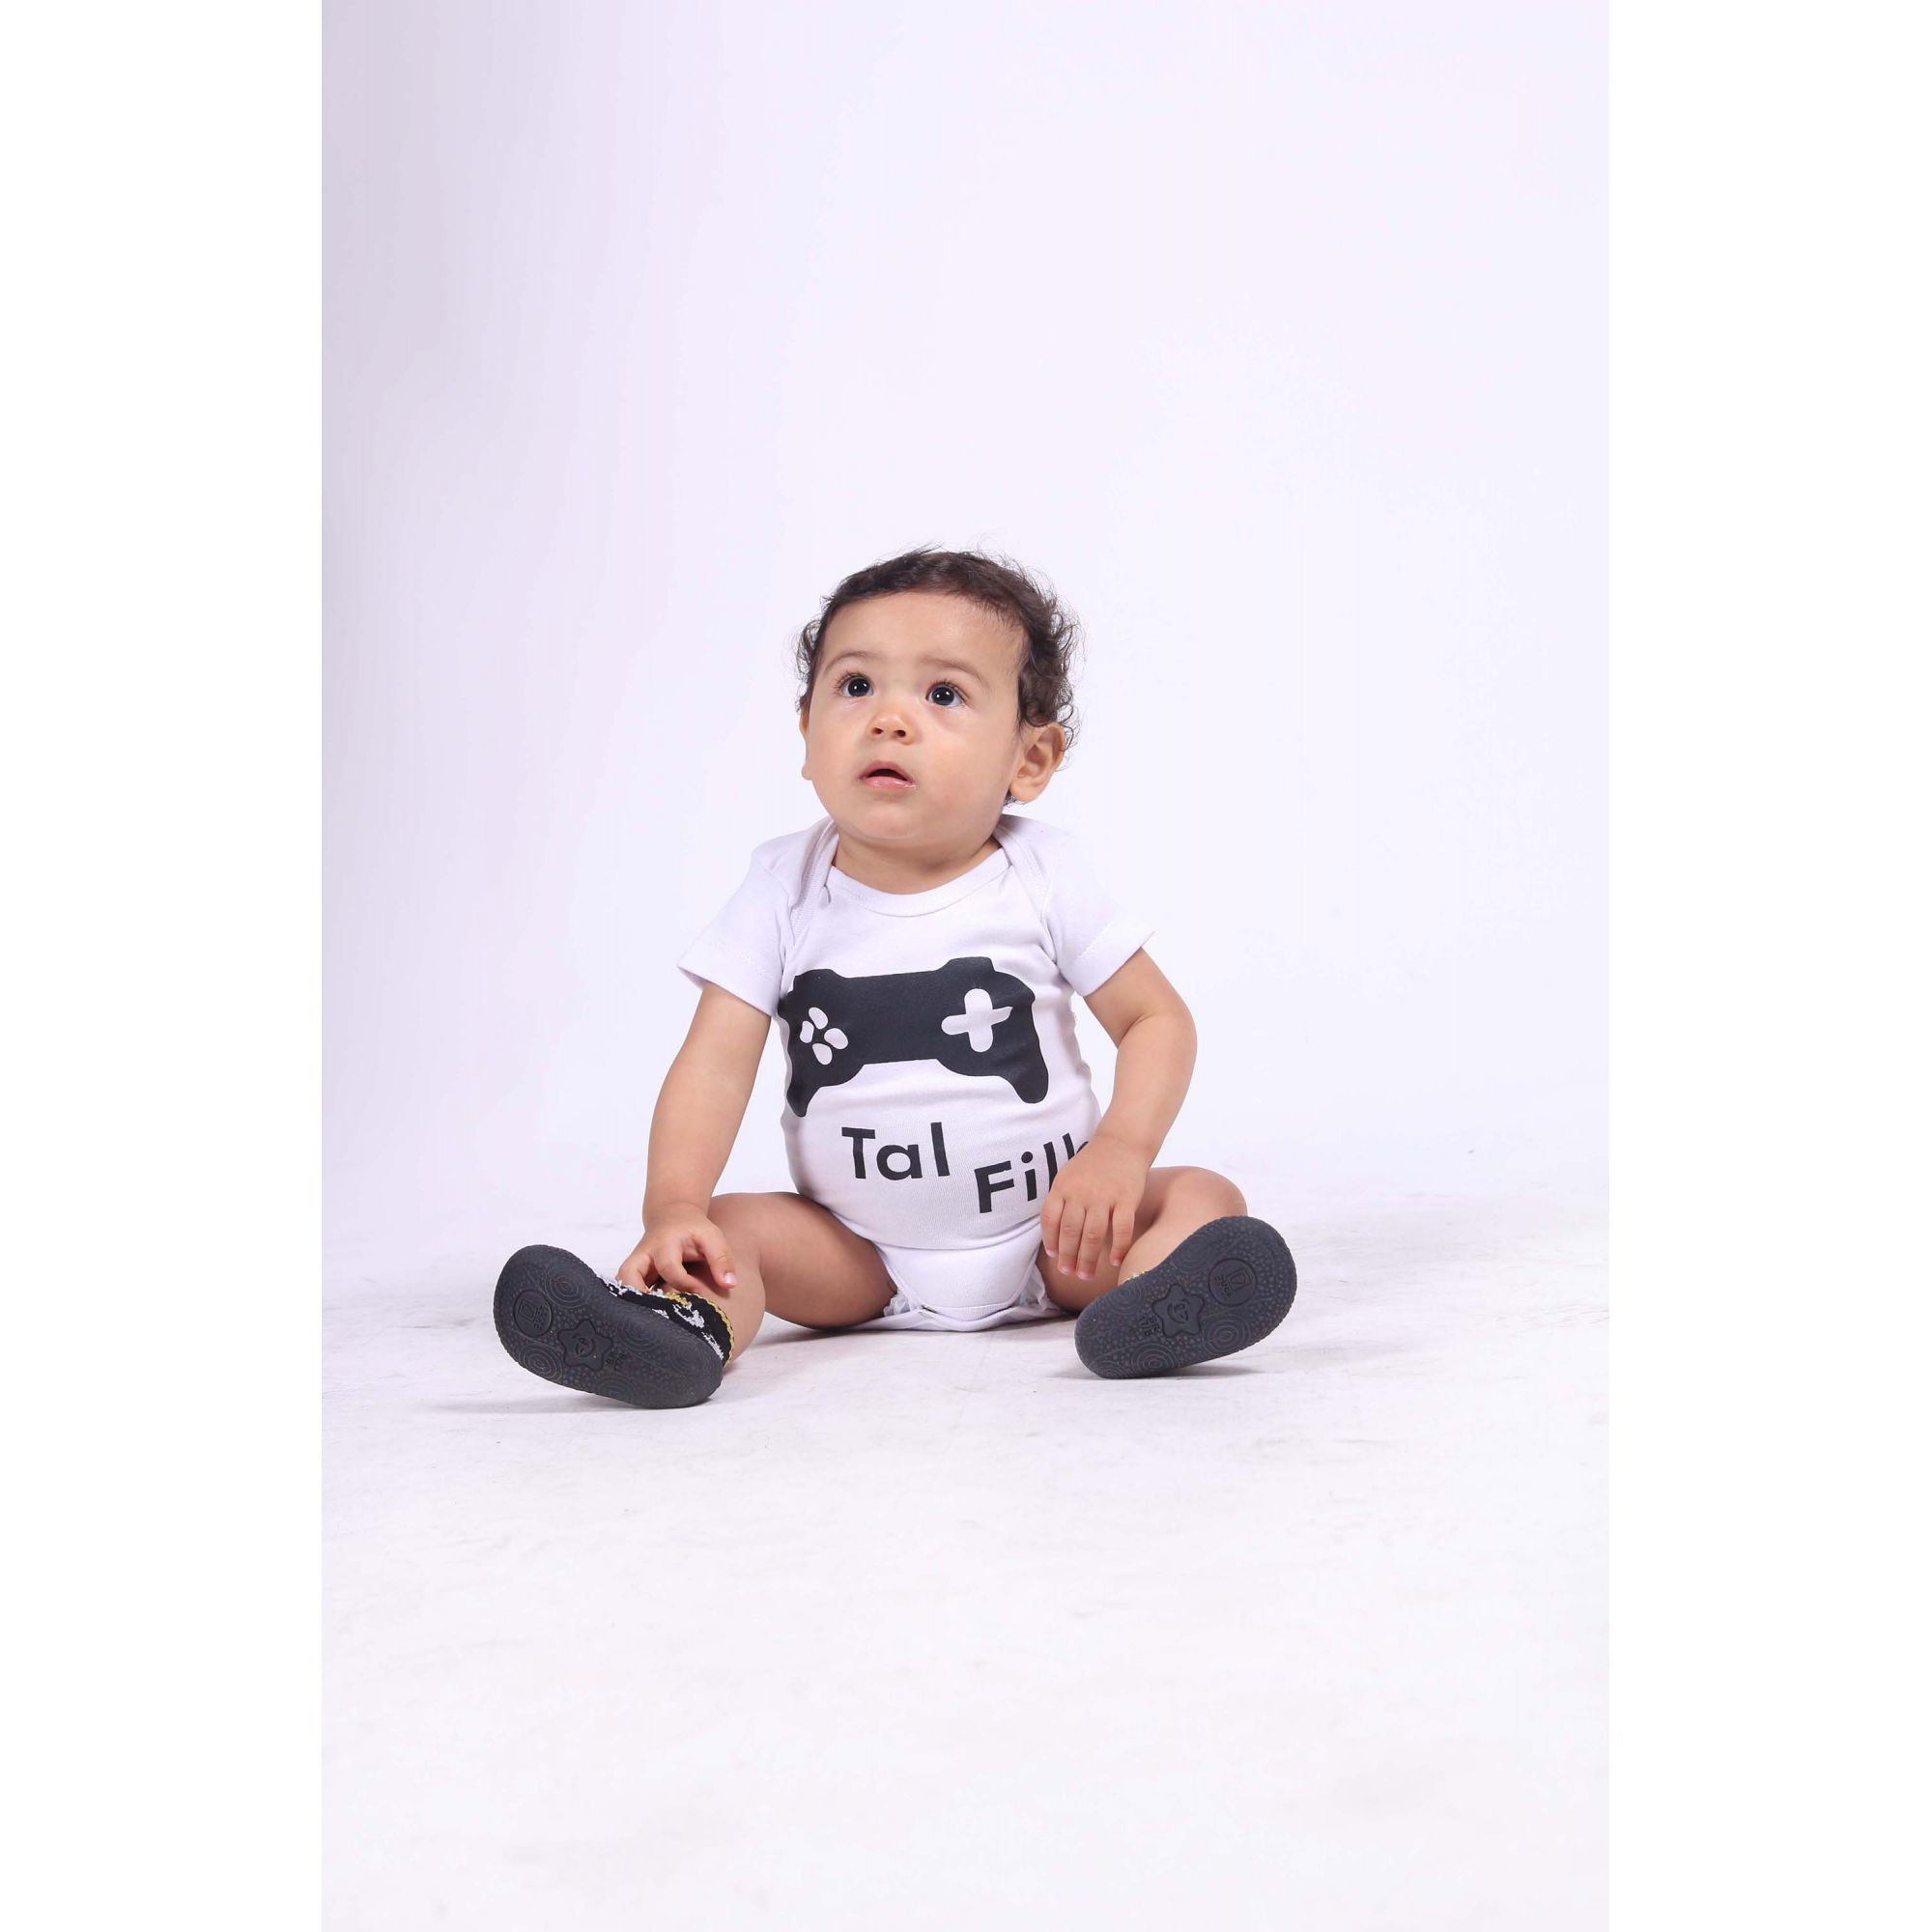 Camiseta Infantil Game ou Body de Bebê  - Heitor Fashion Brazil